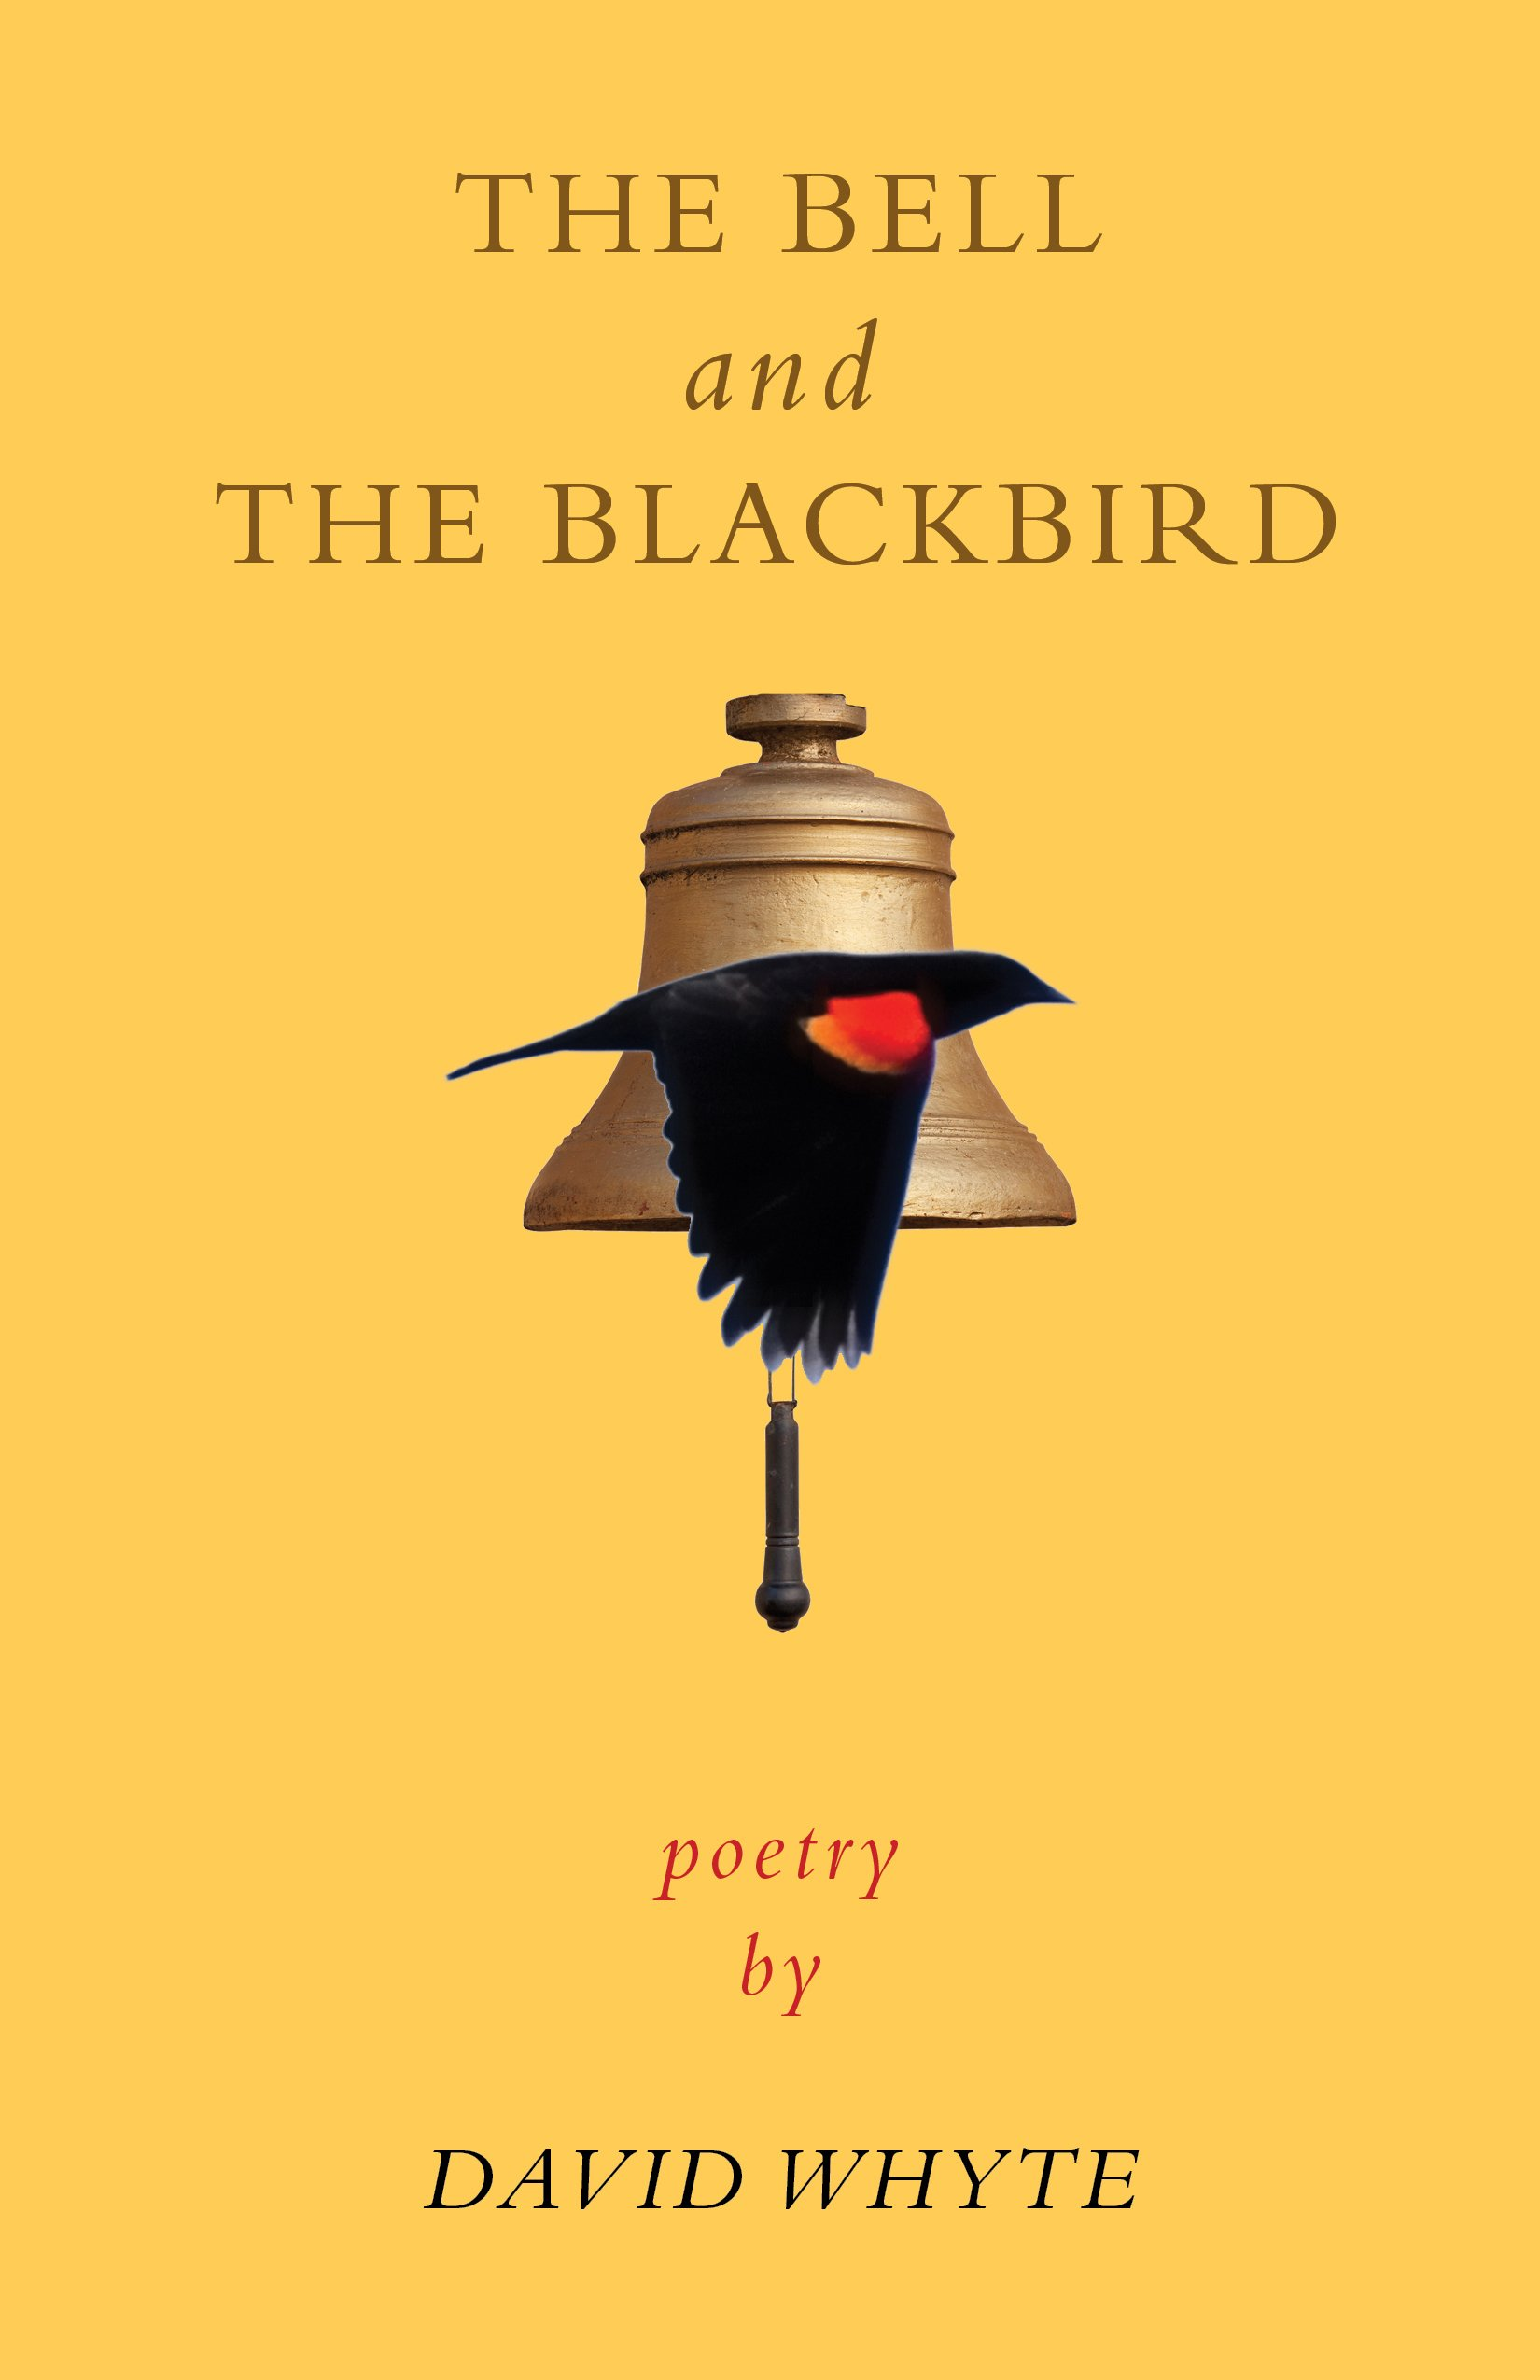 Image result for images the bell and the blackbird